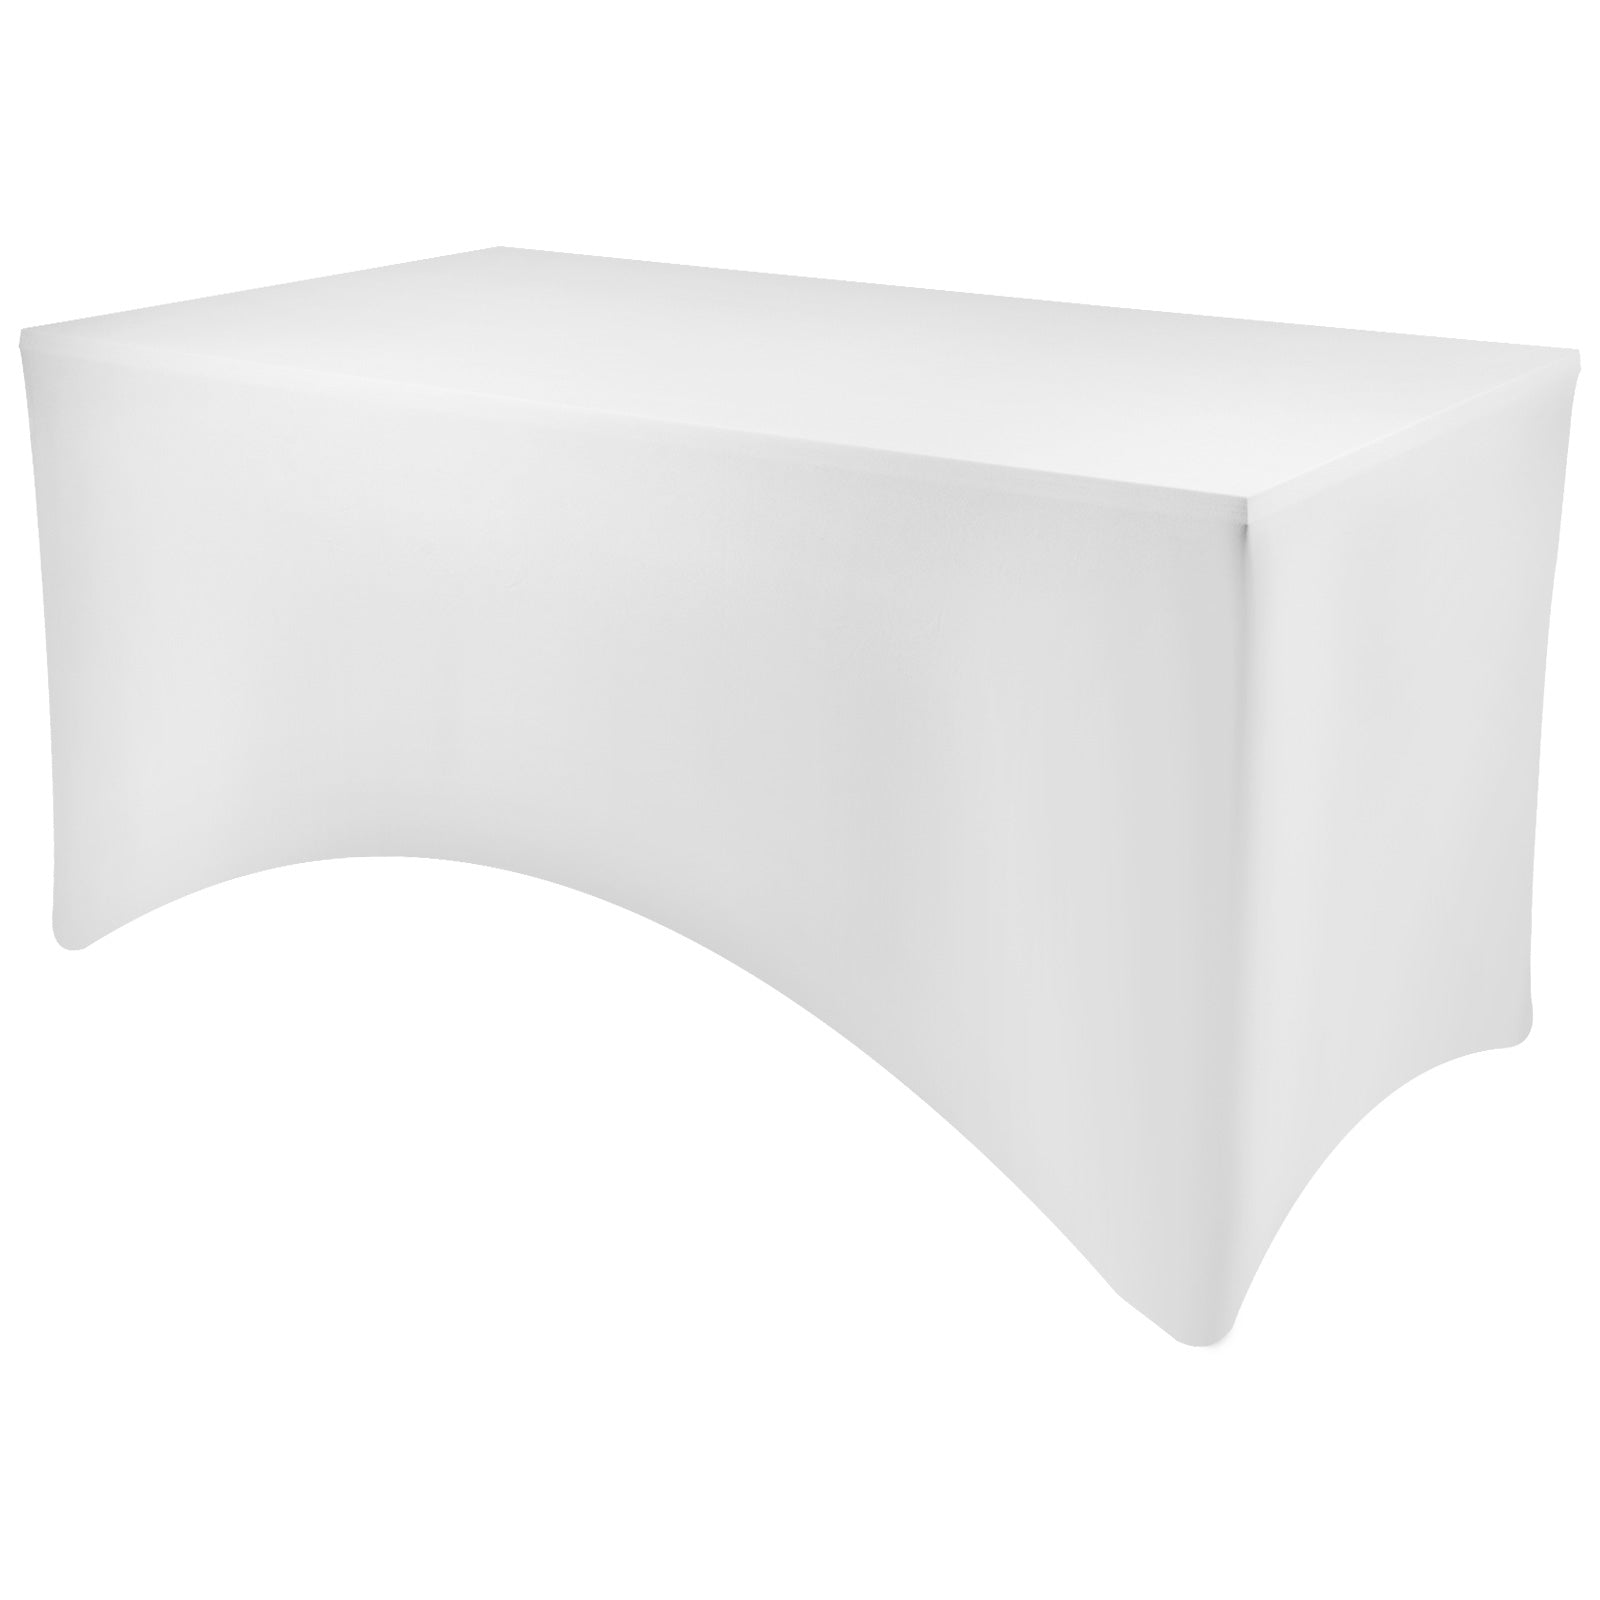 20pc 4ft Stretch Spandex Table Covers Fitted Rectangular Tablecloths White 4/'